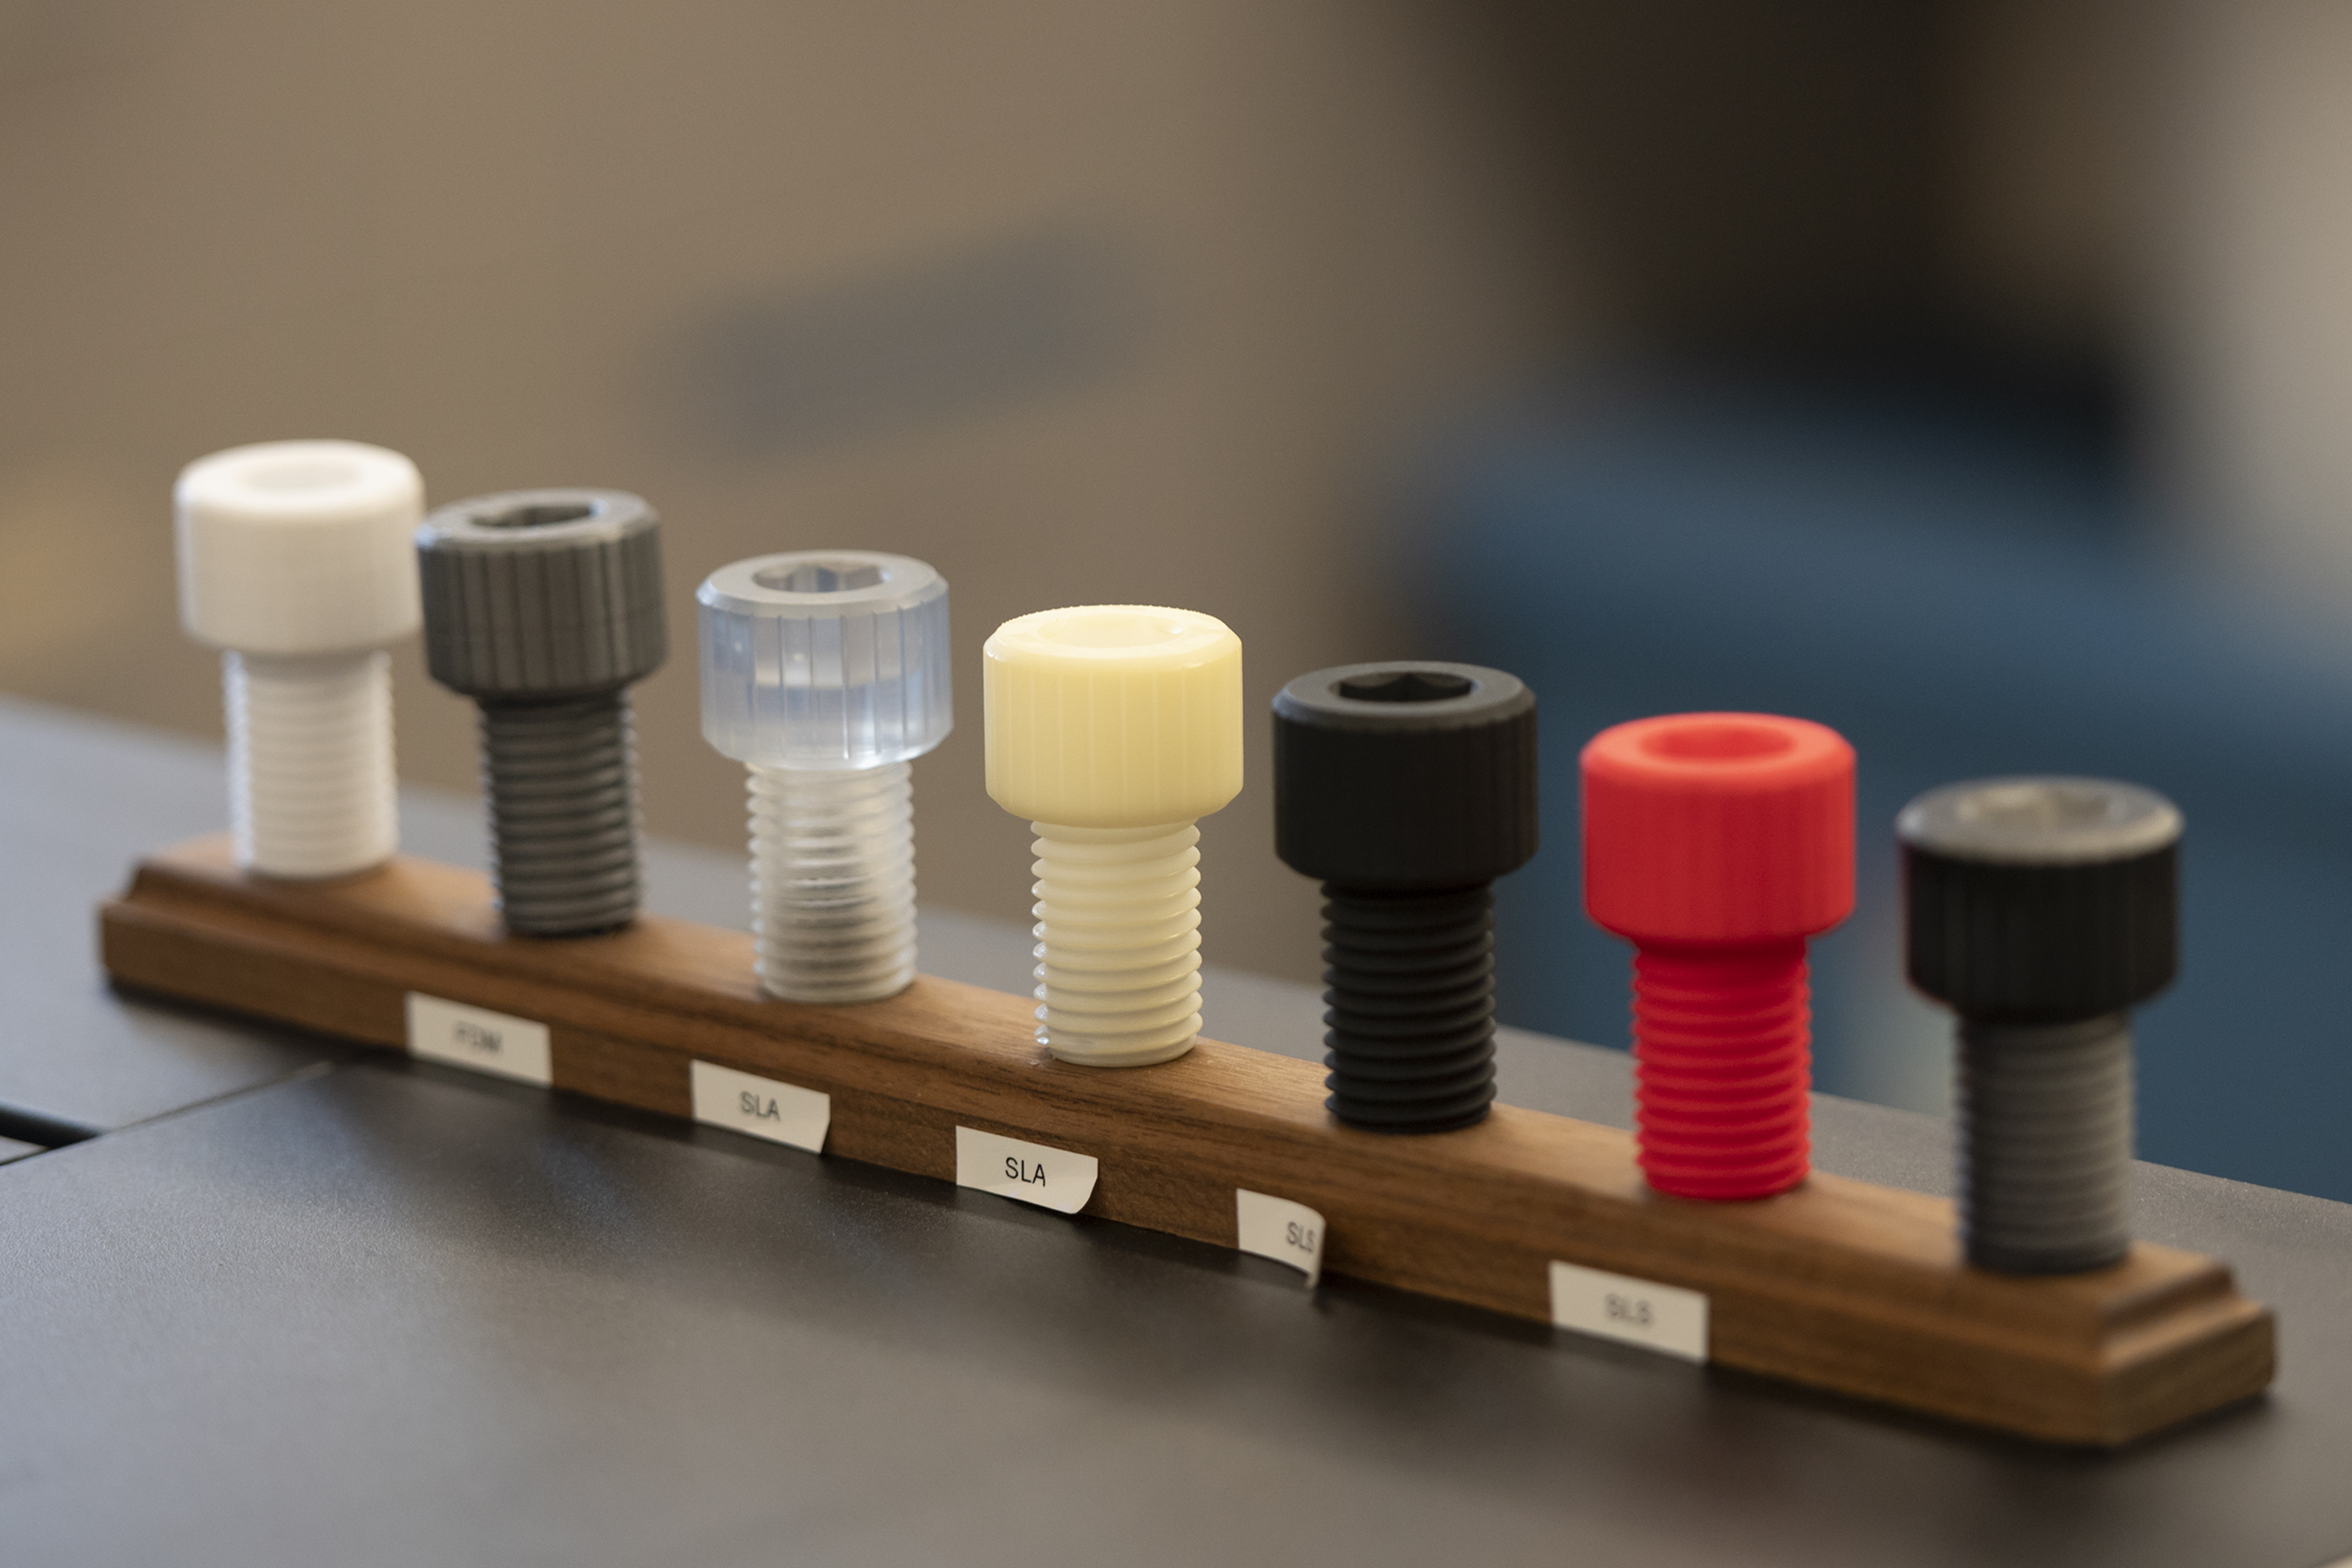 A line-up of 7 screws made out of different materials.